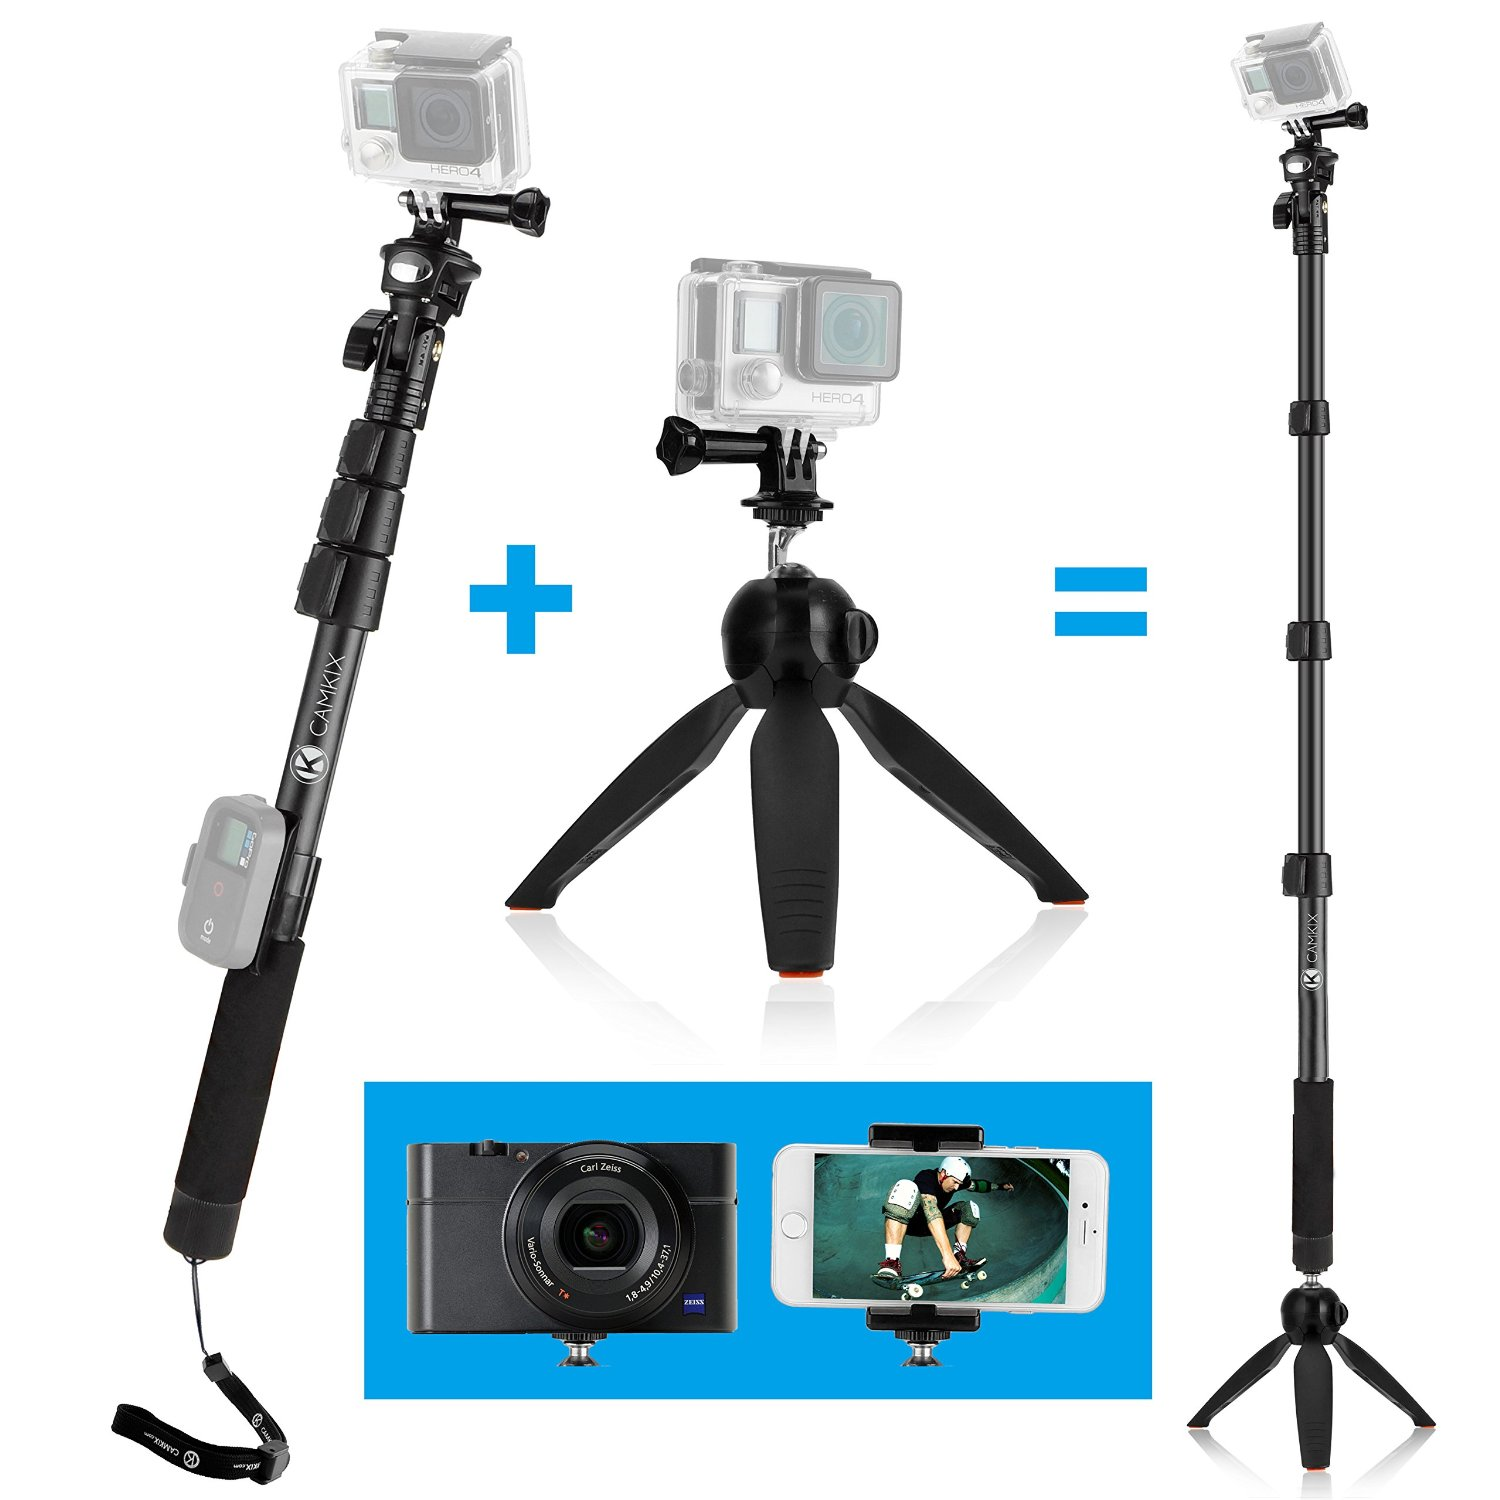 Top 10 Best Gopro Stabilizers In 2020 Reviews